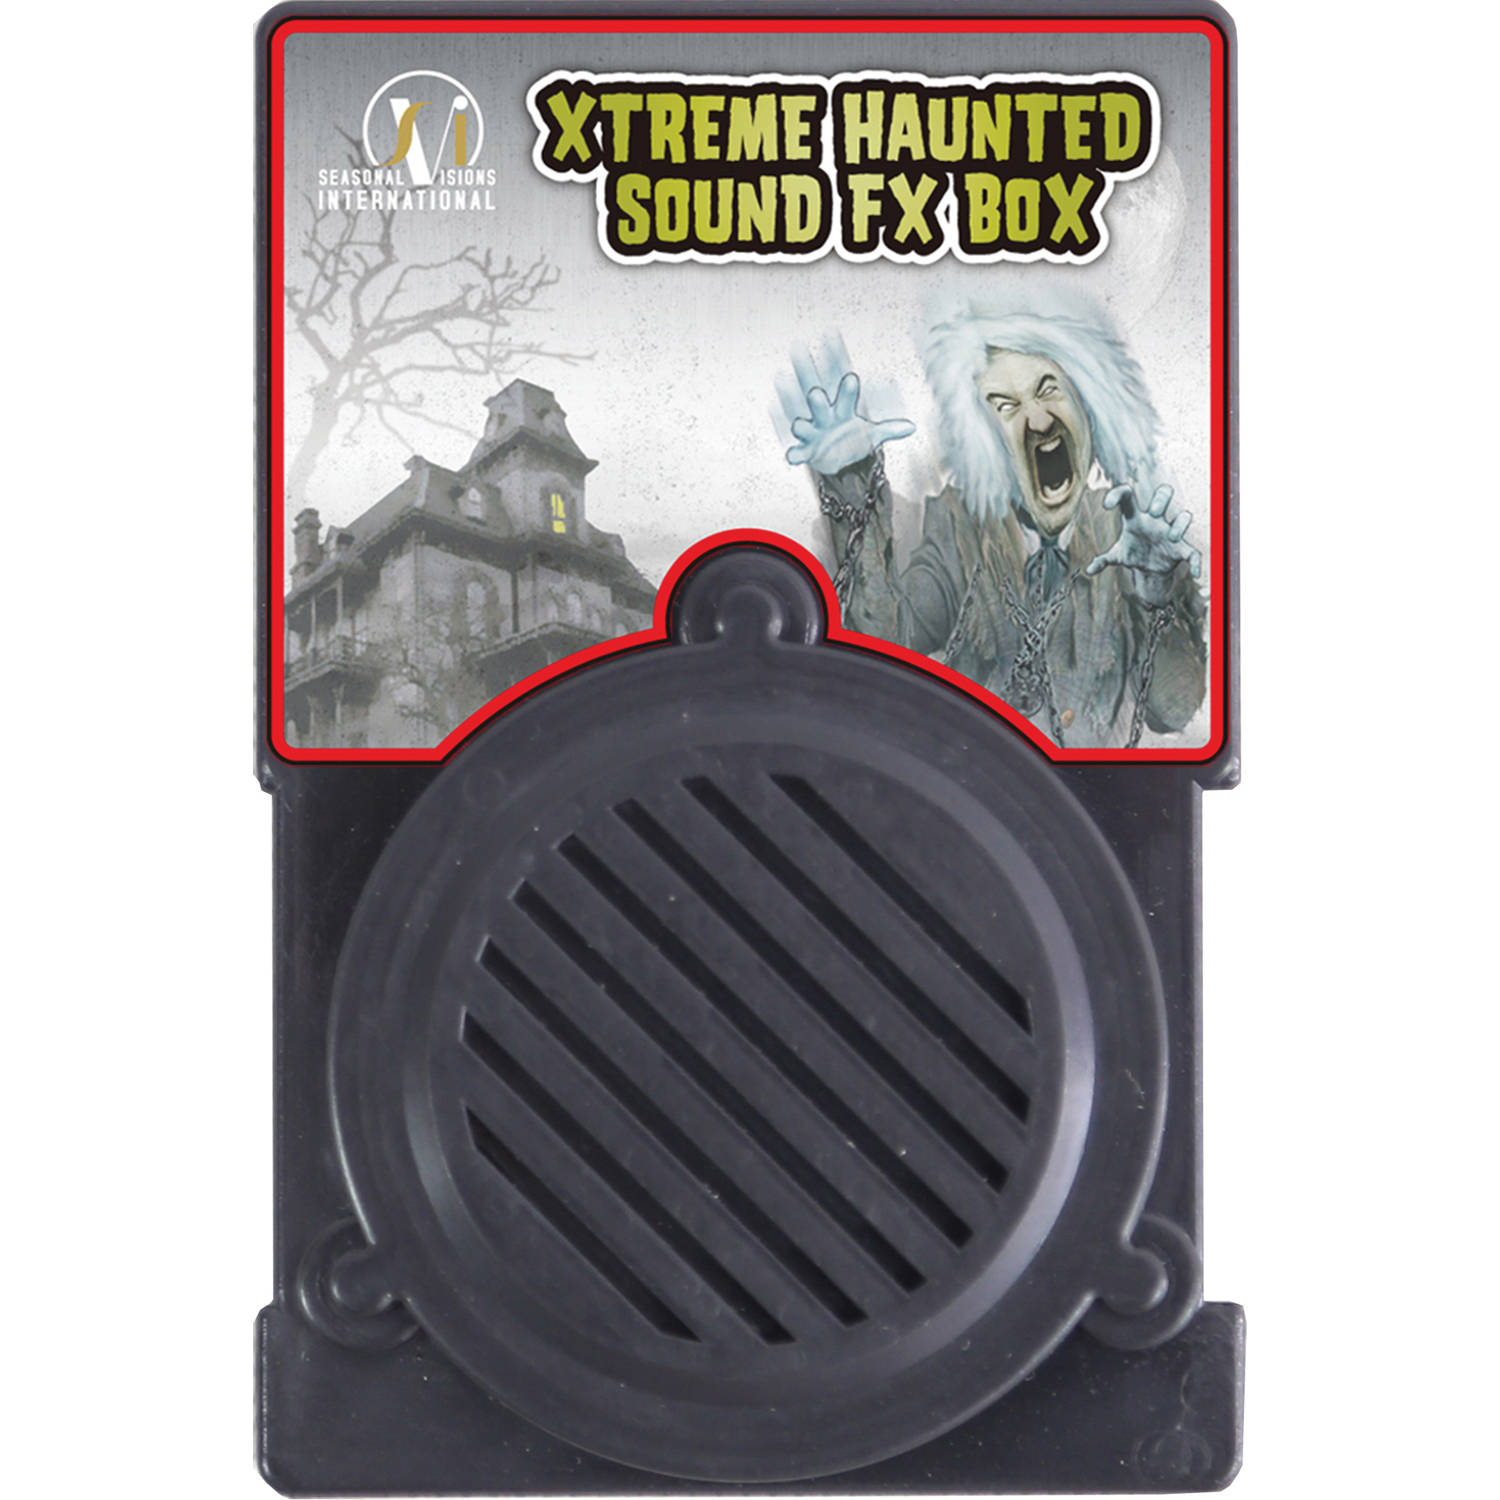 Extreme Haunted Sound Box Halloween Decoration